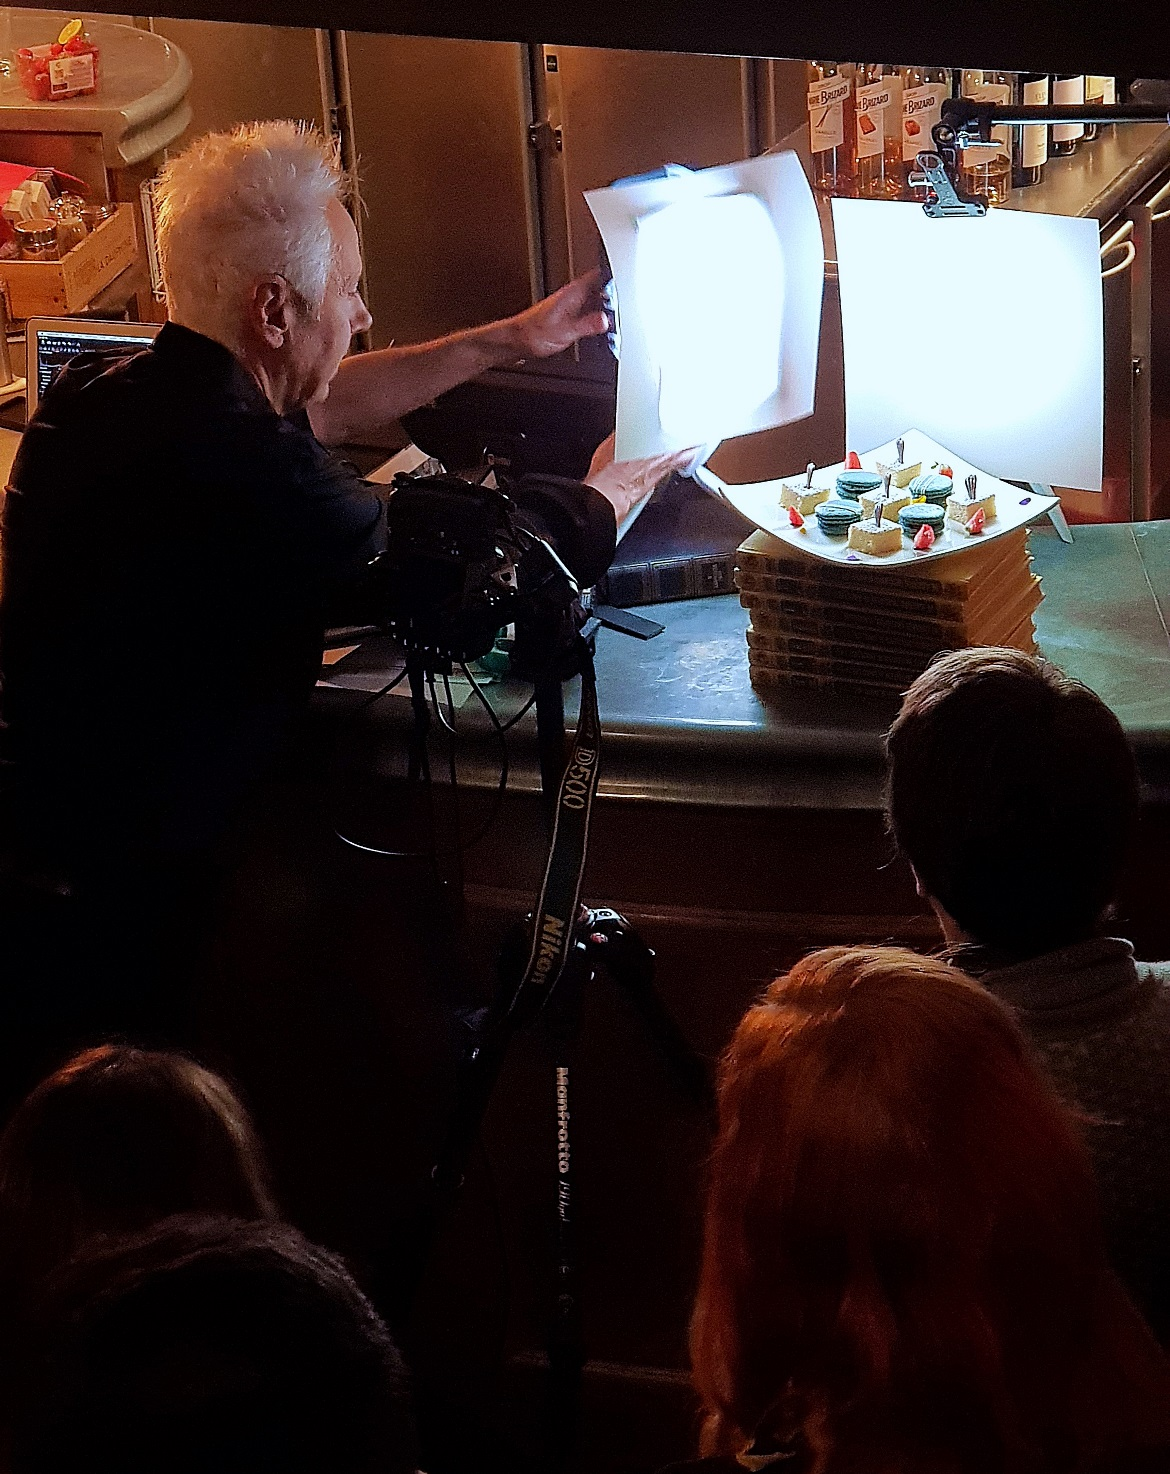 Food photography at Manfrotto Photography Masterclass - November Monthly Recap by BeckyBecky Blogs